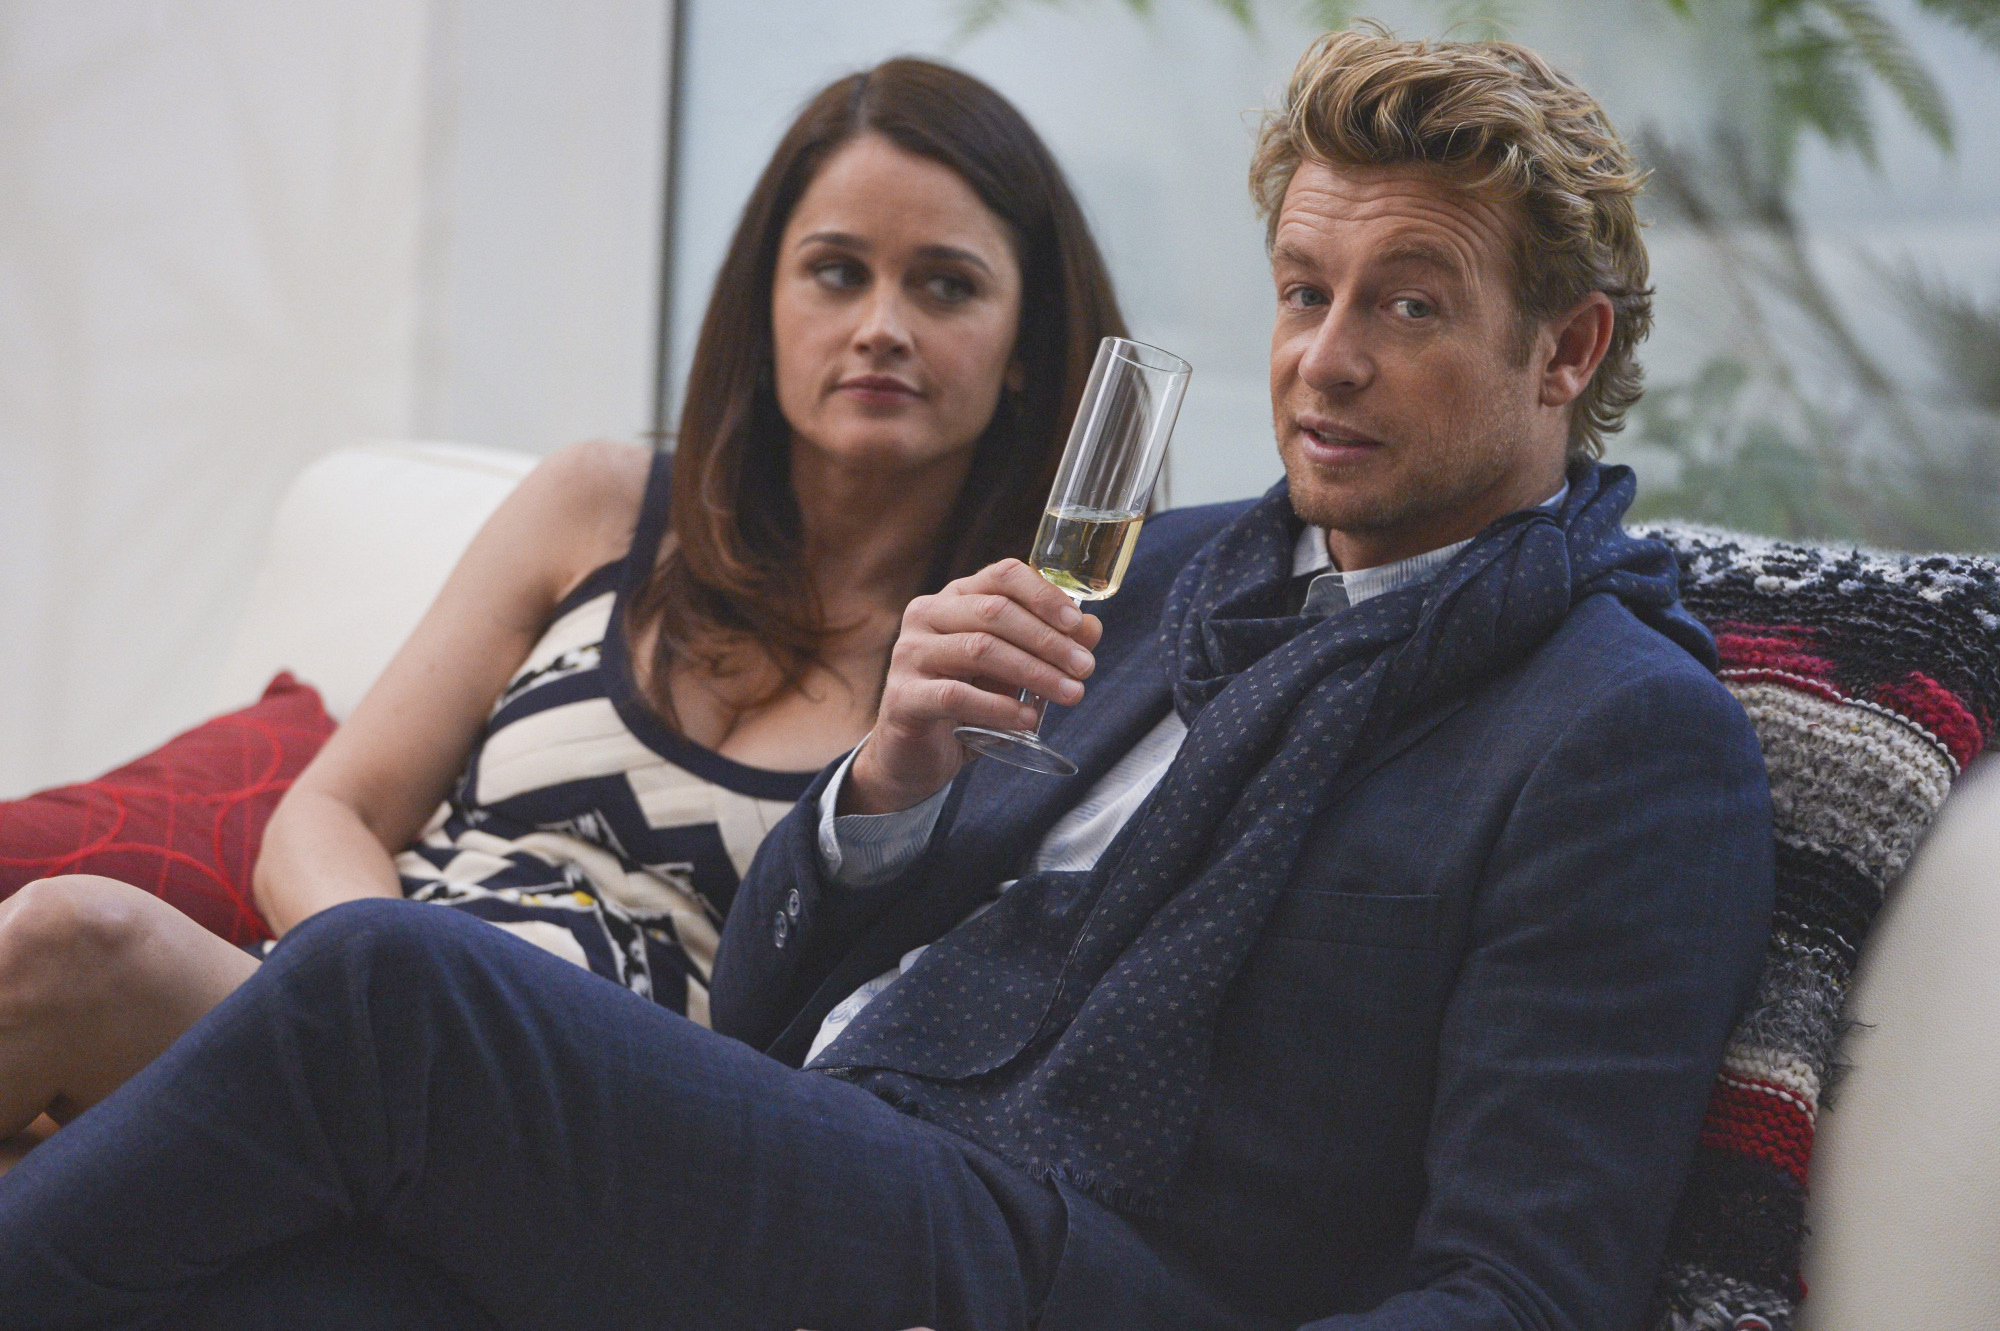 3. Lisbon and Jane - The Mentalist